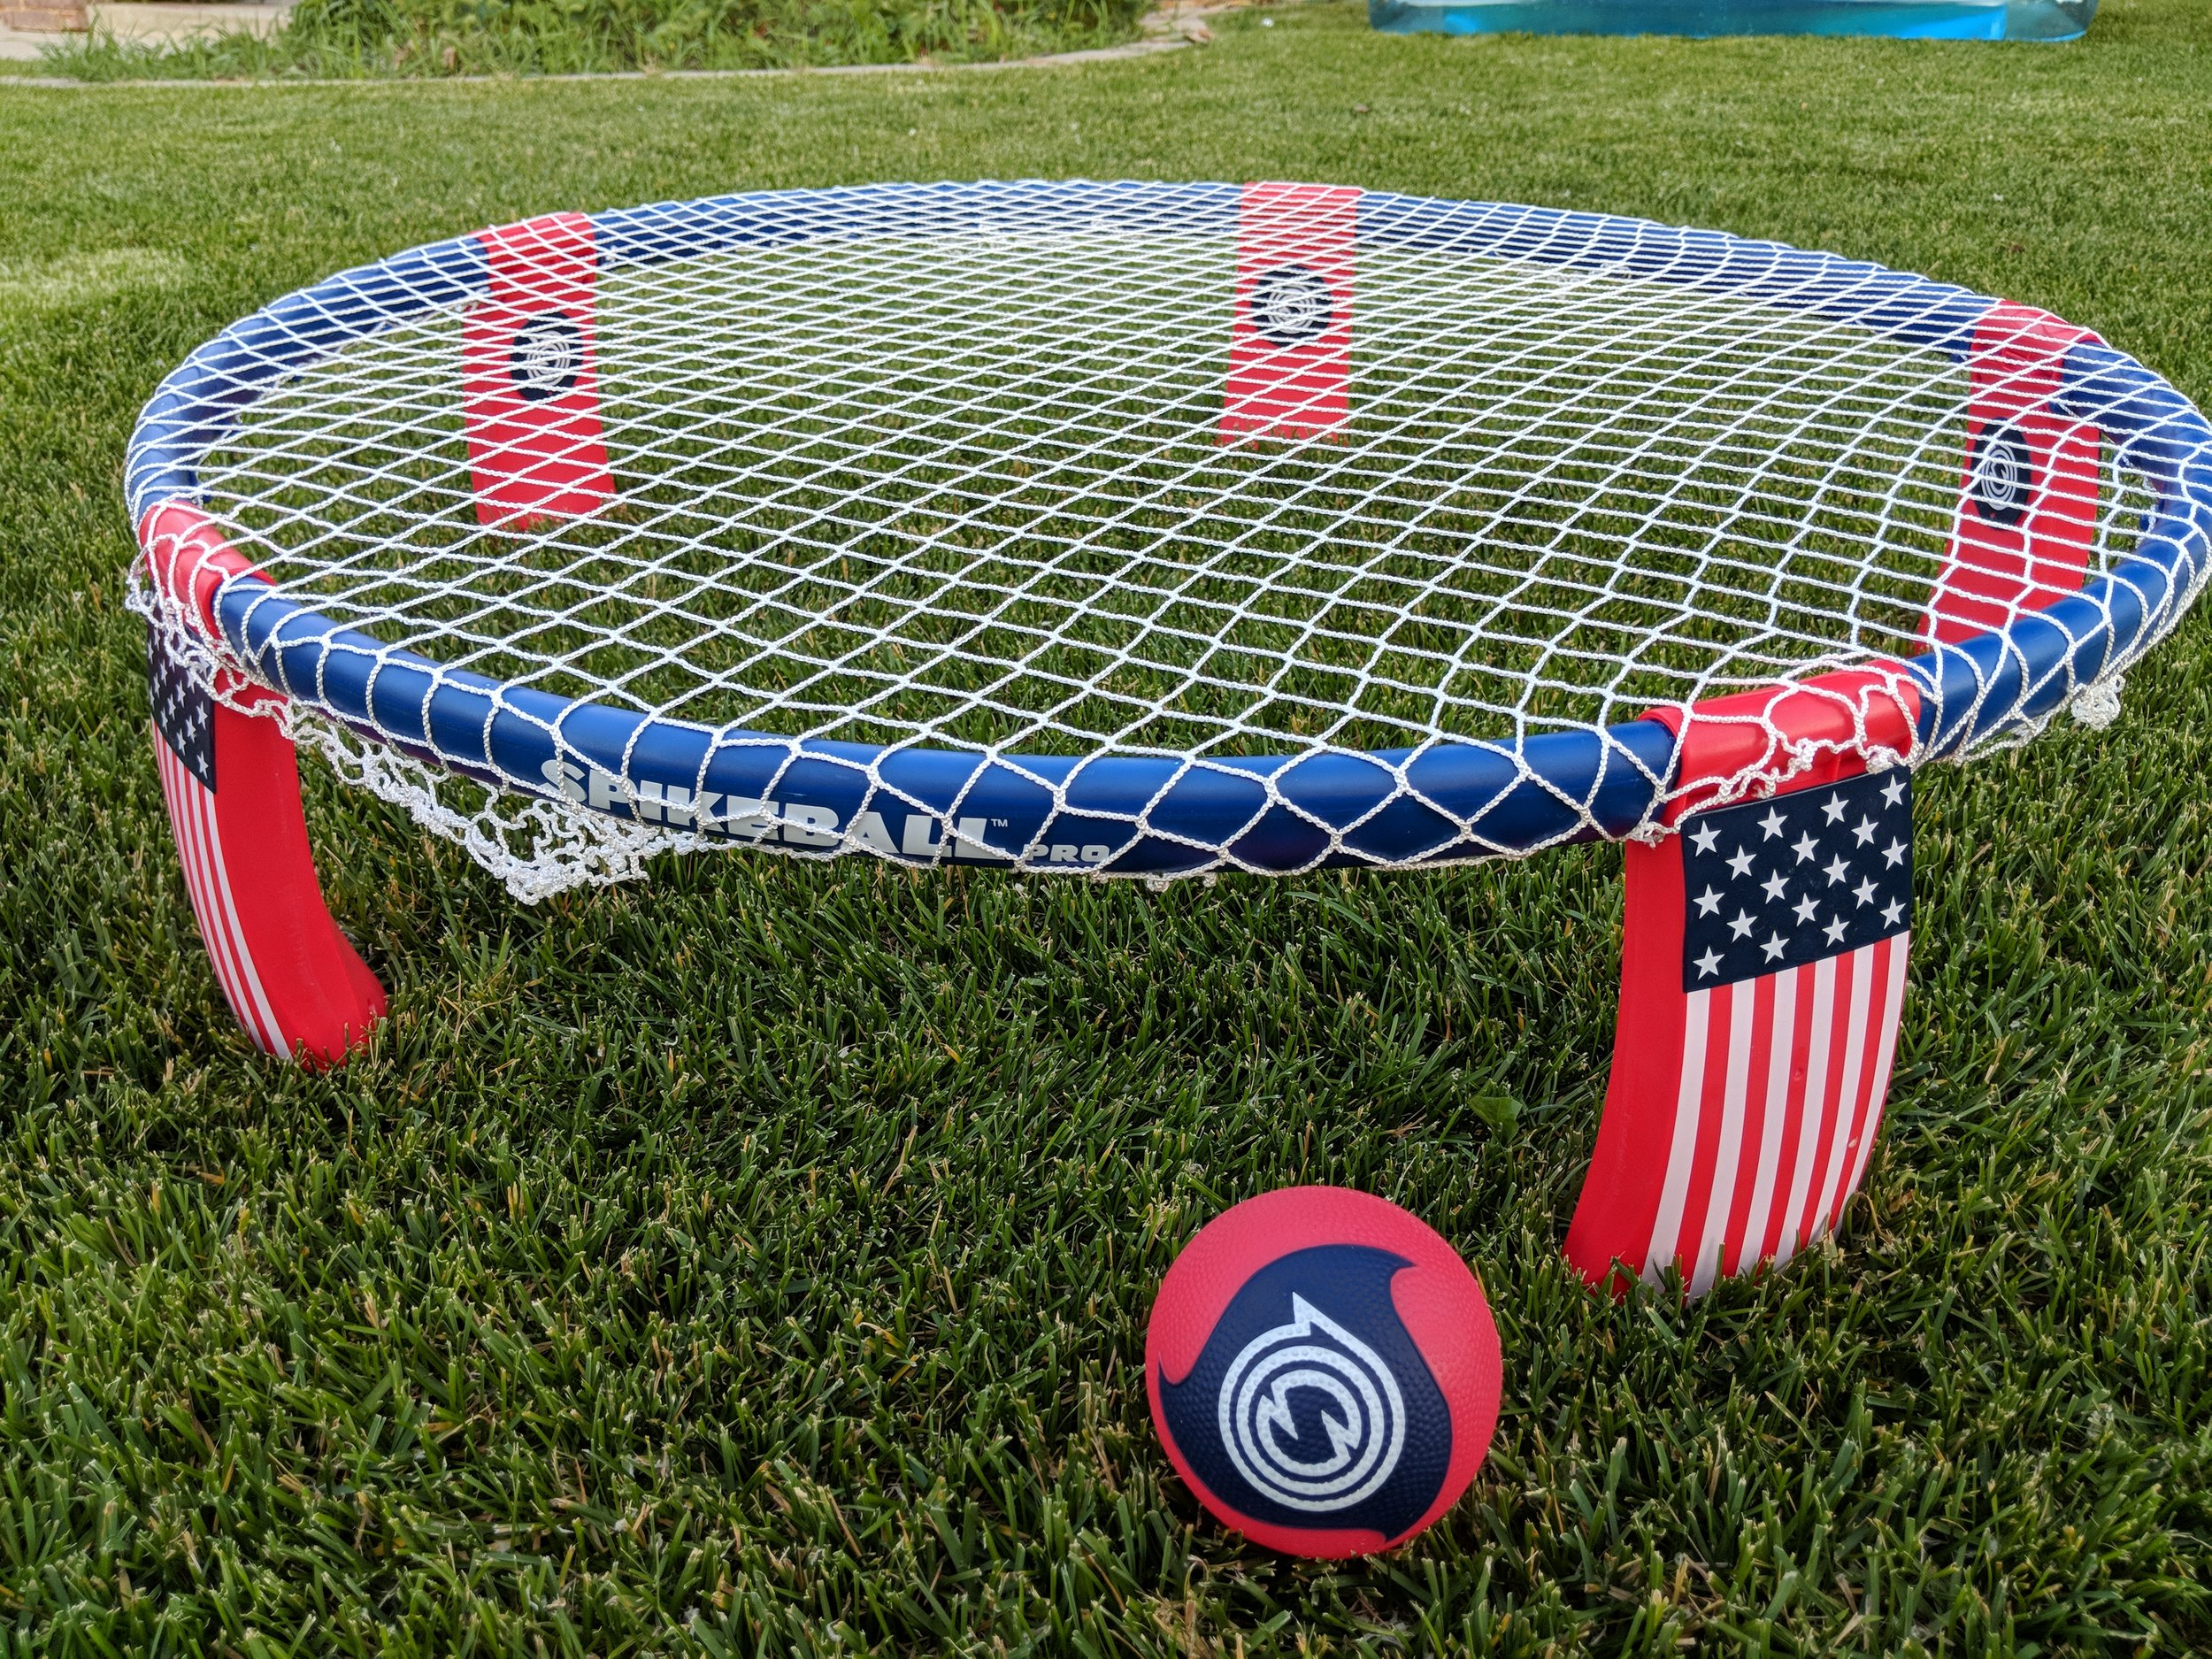 What is Roundnet? - Roundnet is the sport popularized by Spikeball™. You may have heard of it referred to as Spikeball™, but that is merely the brand who makes the product on which roundnet is played! Check out their information at Spikeball.com!